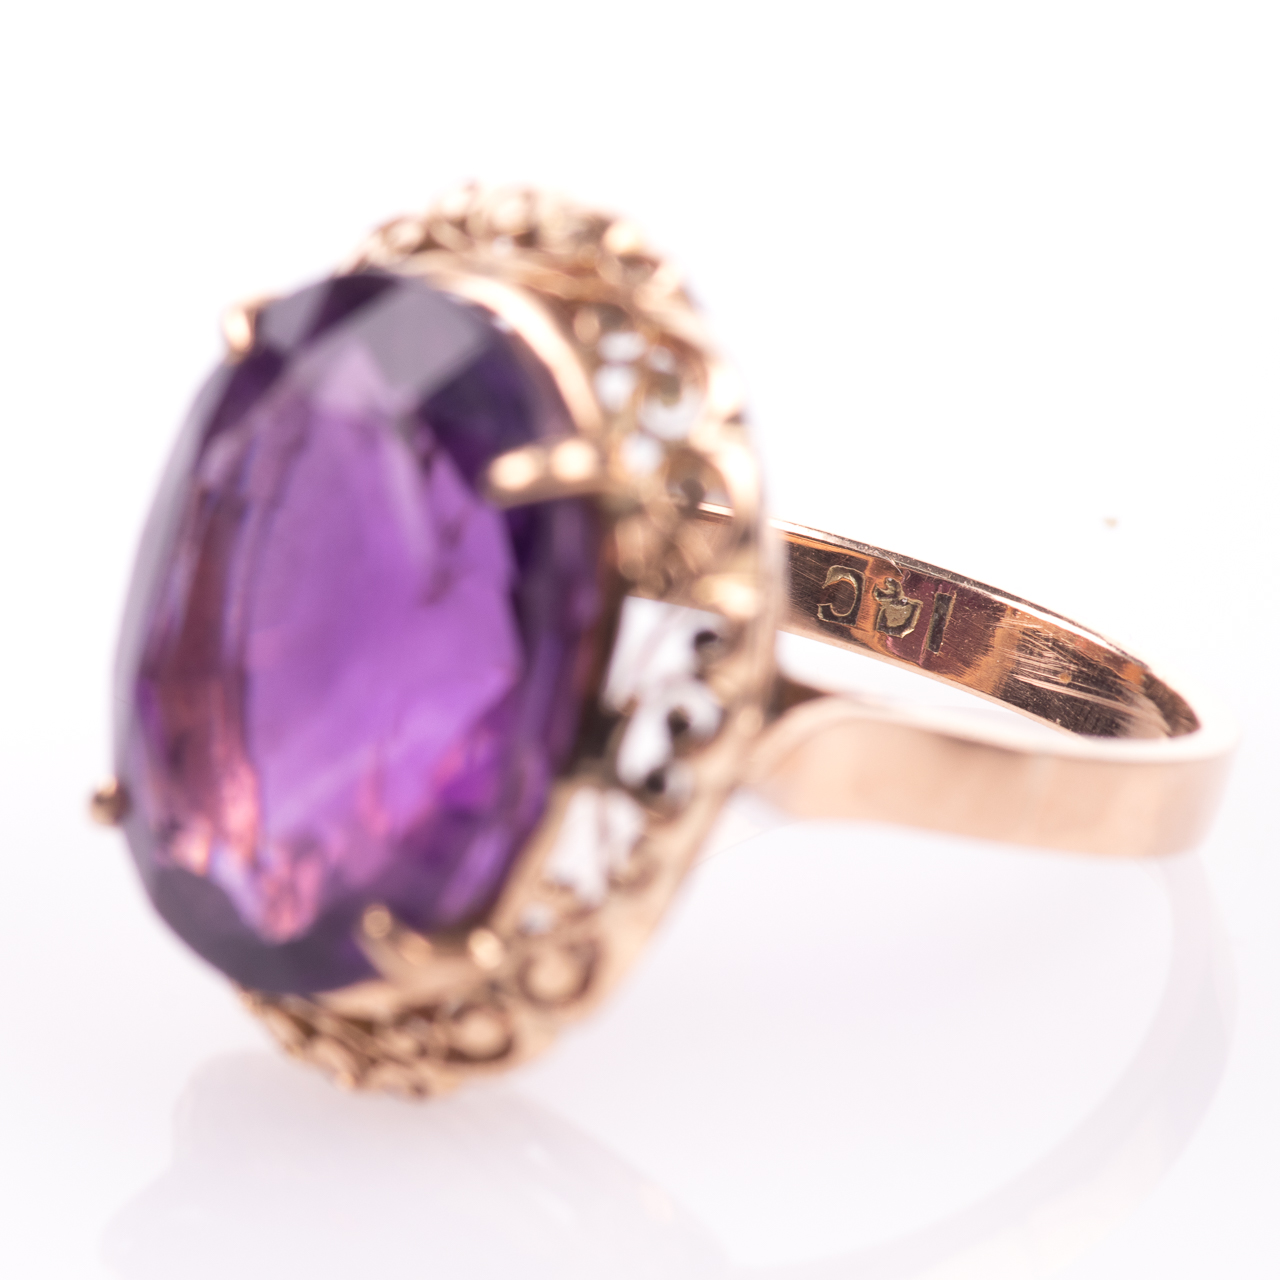 14ct Gold Amethyst Ring - Image 5 of 7